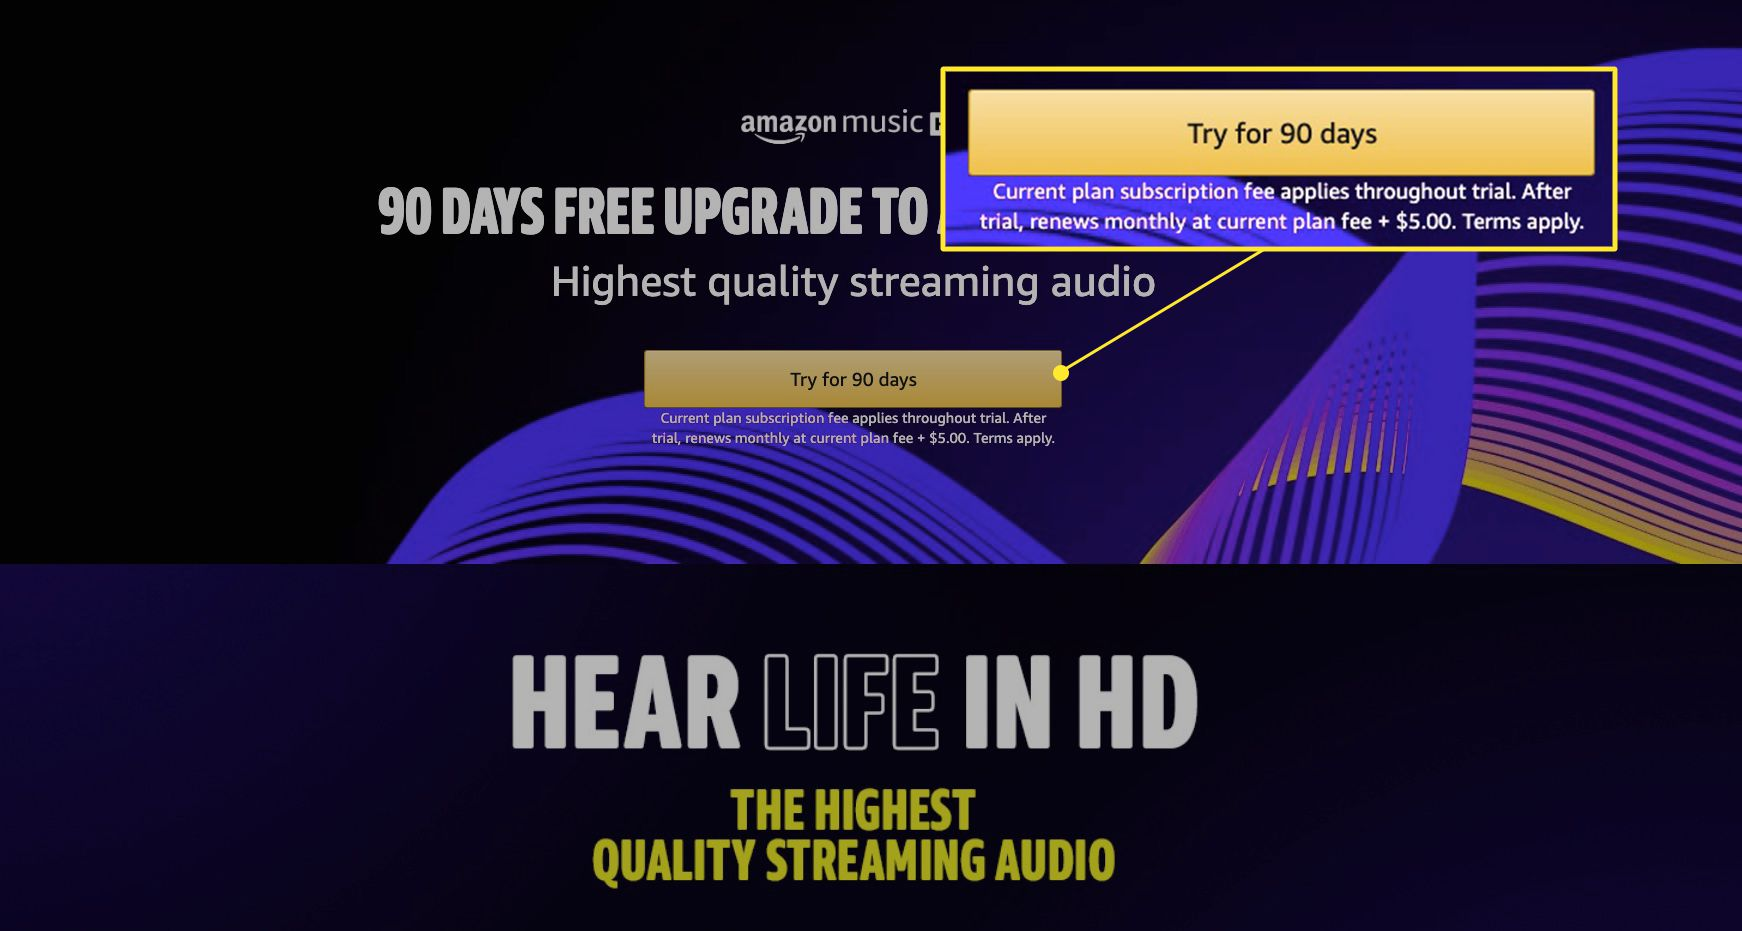 Amazon Music HD page with